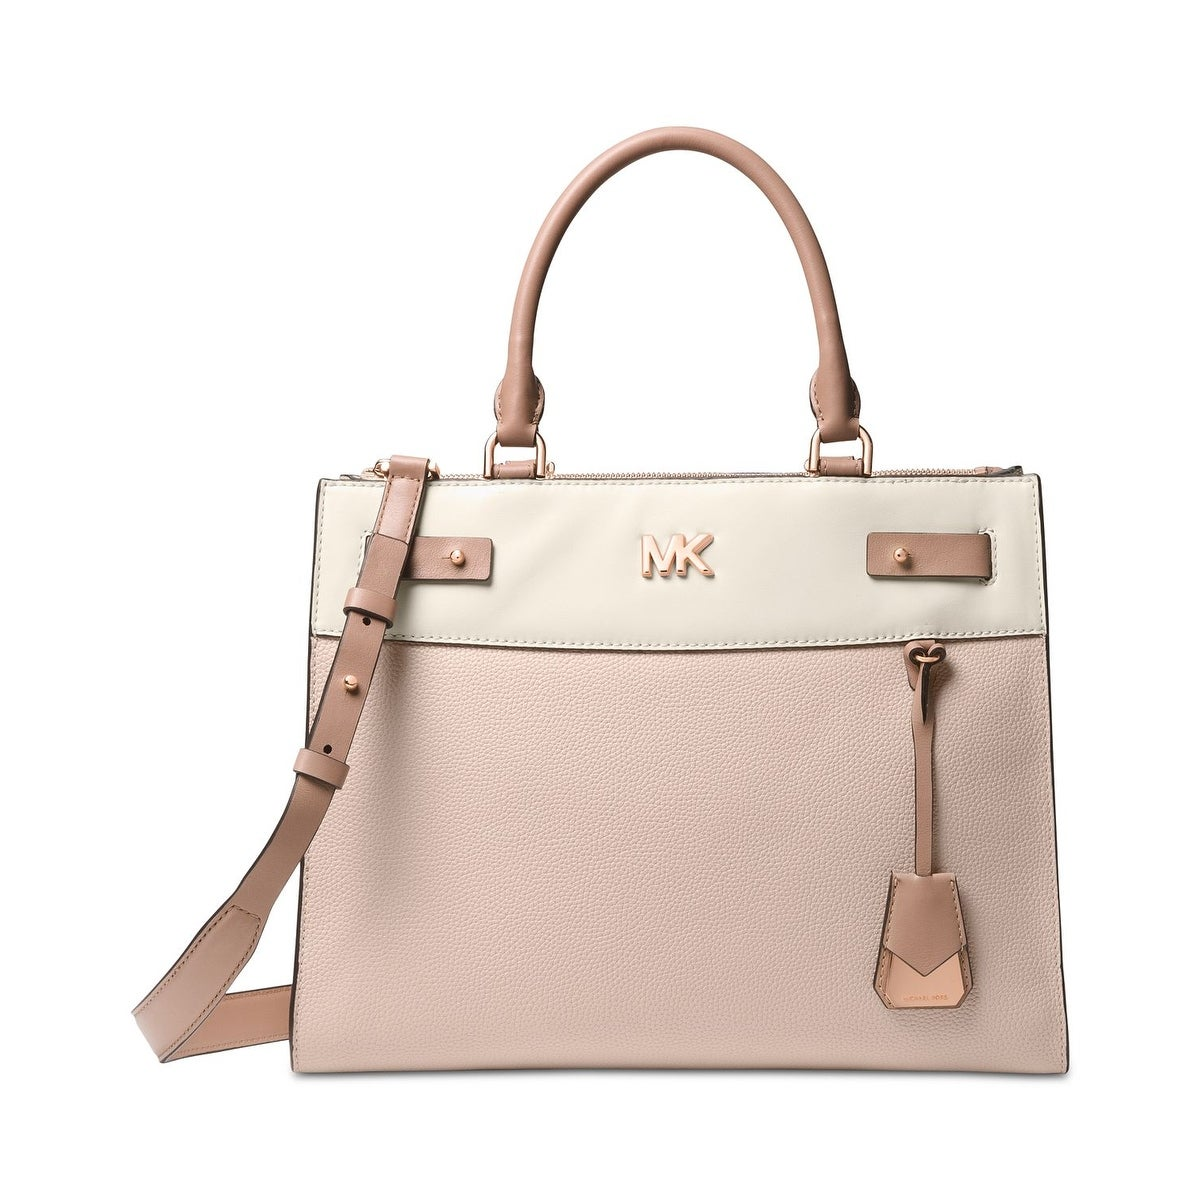 81f4adf37a82 MICHAEL Michael Kors Reagan Large Leather Satchel Soft Pink/Light  Cream/Fawn - One Size